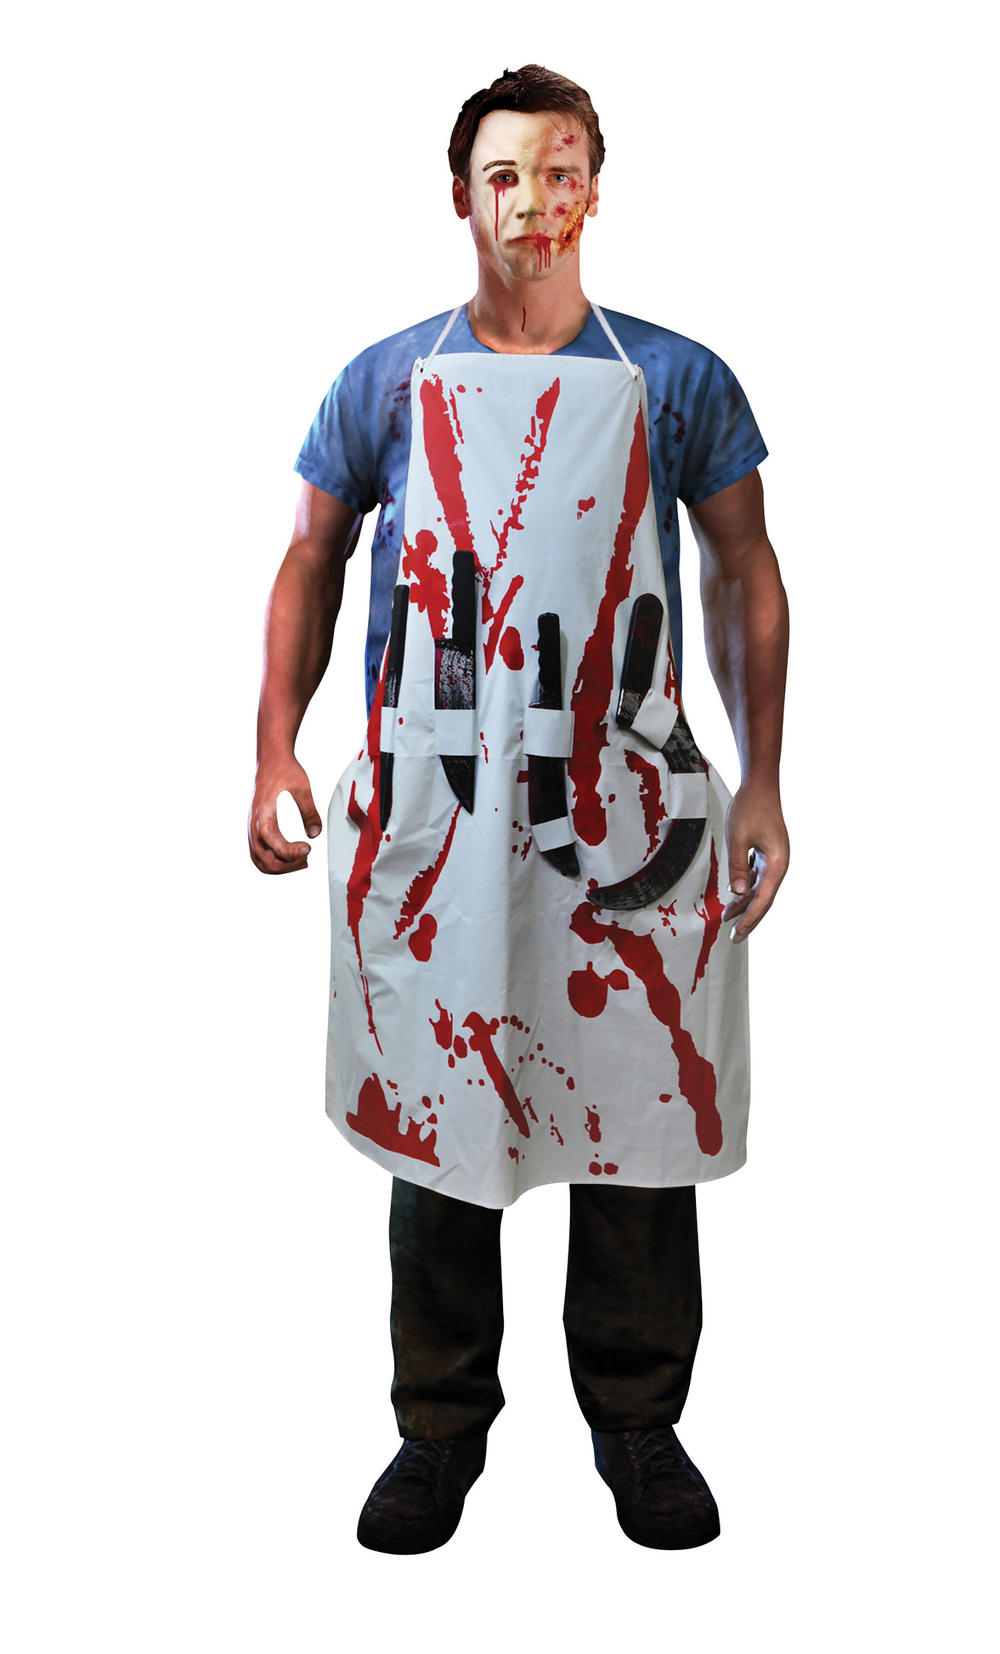 Bleeding Apron with 4 Weapons